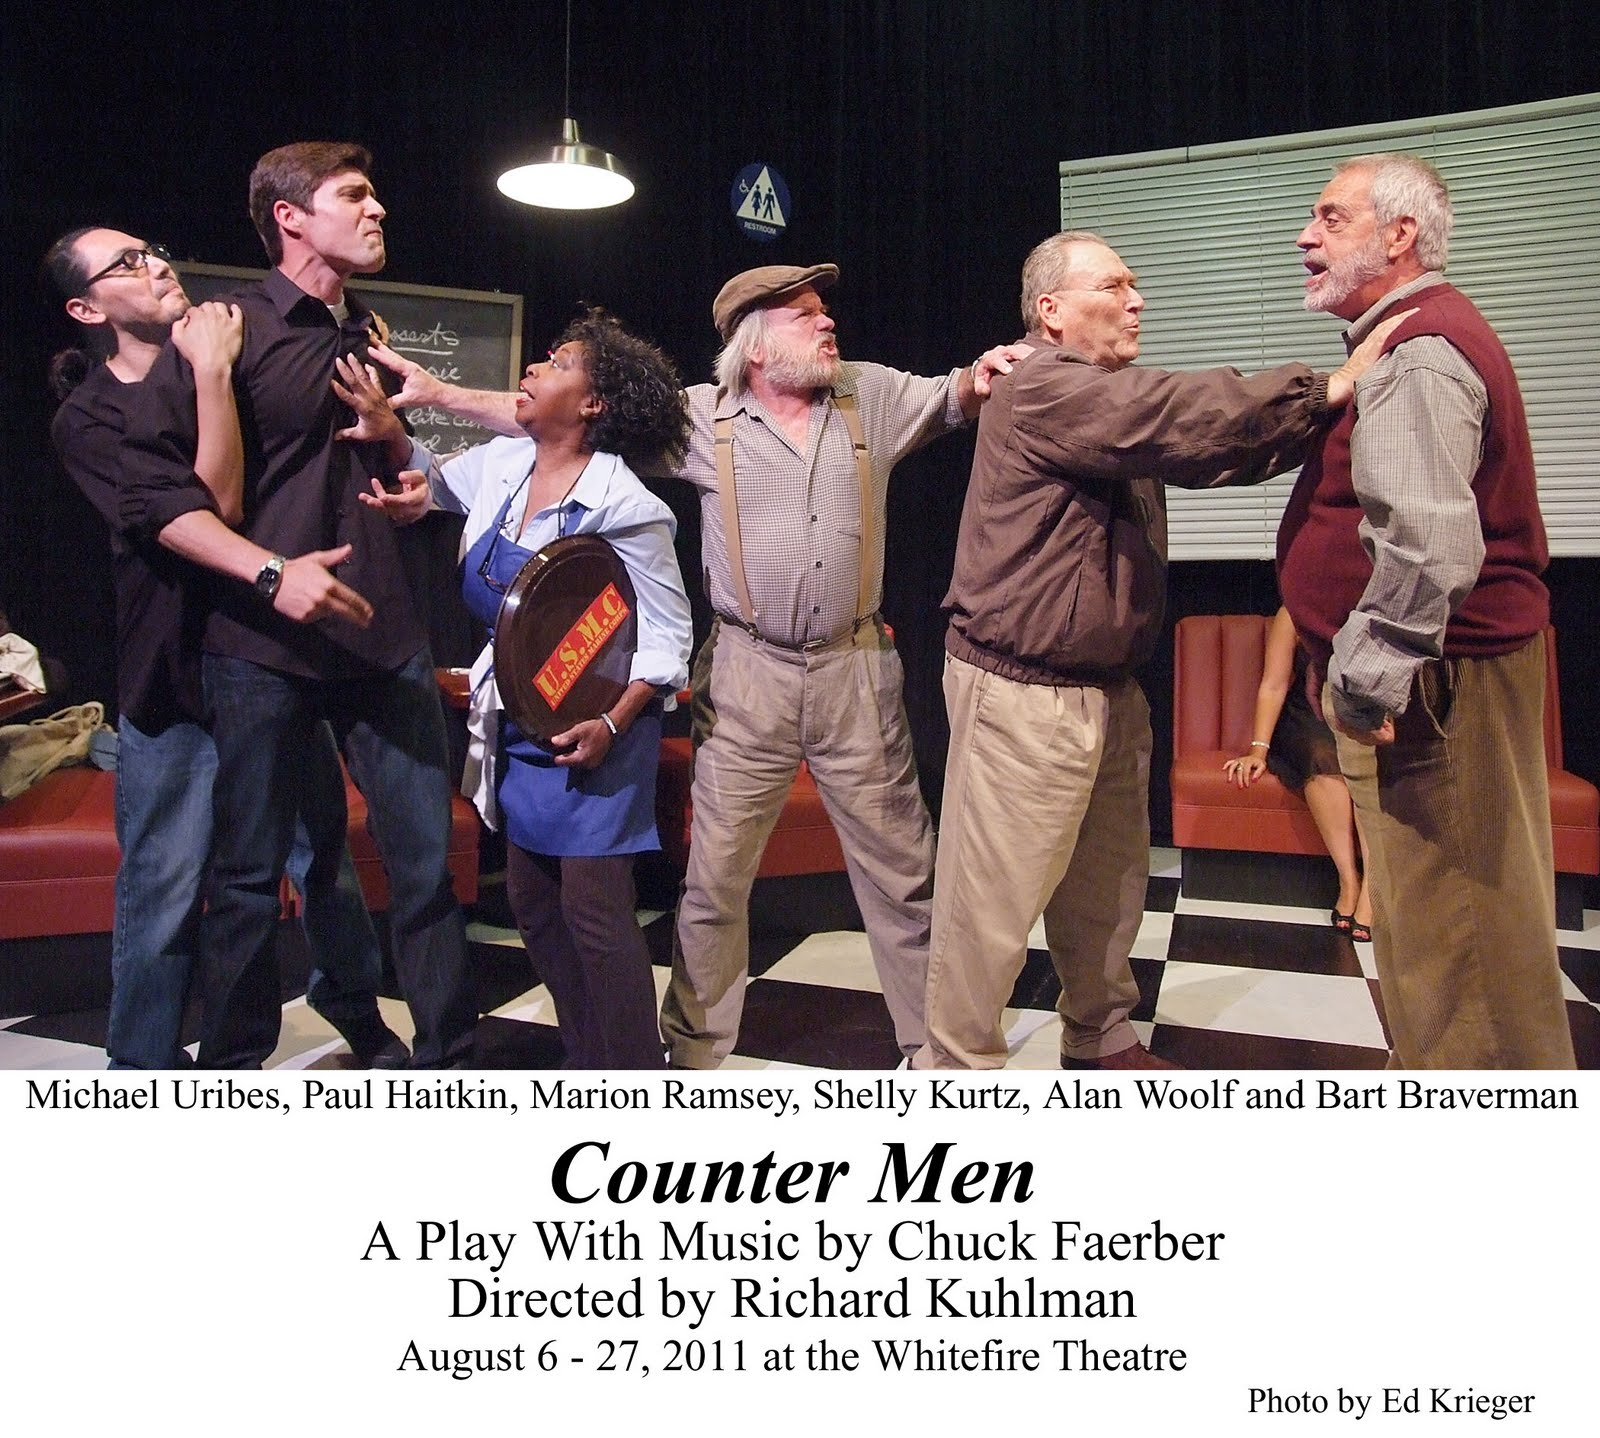 review counter men grigware reviews chuck faerber s world premiere counter men now onstage at the whitefire theatre is peculiarly intriguing a 14 character cast and just about as many